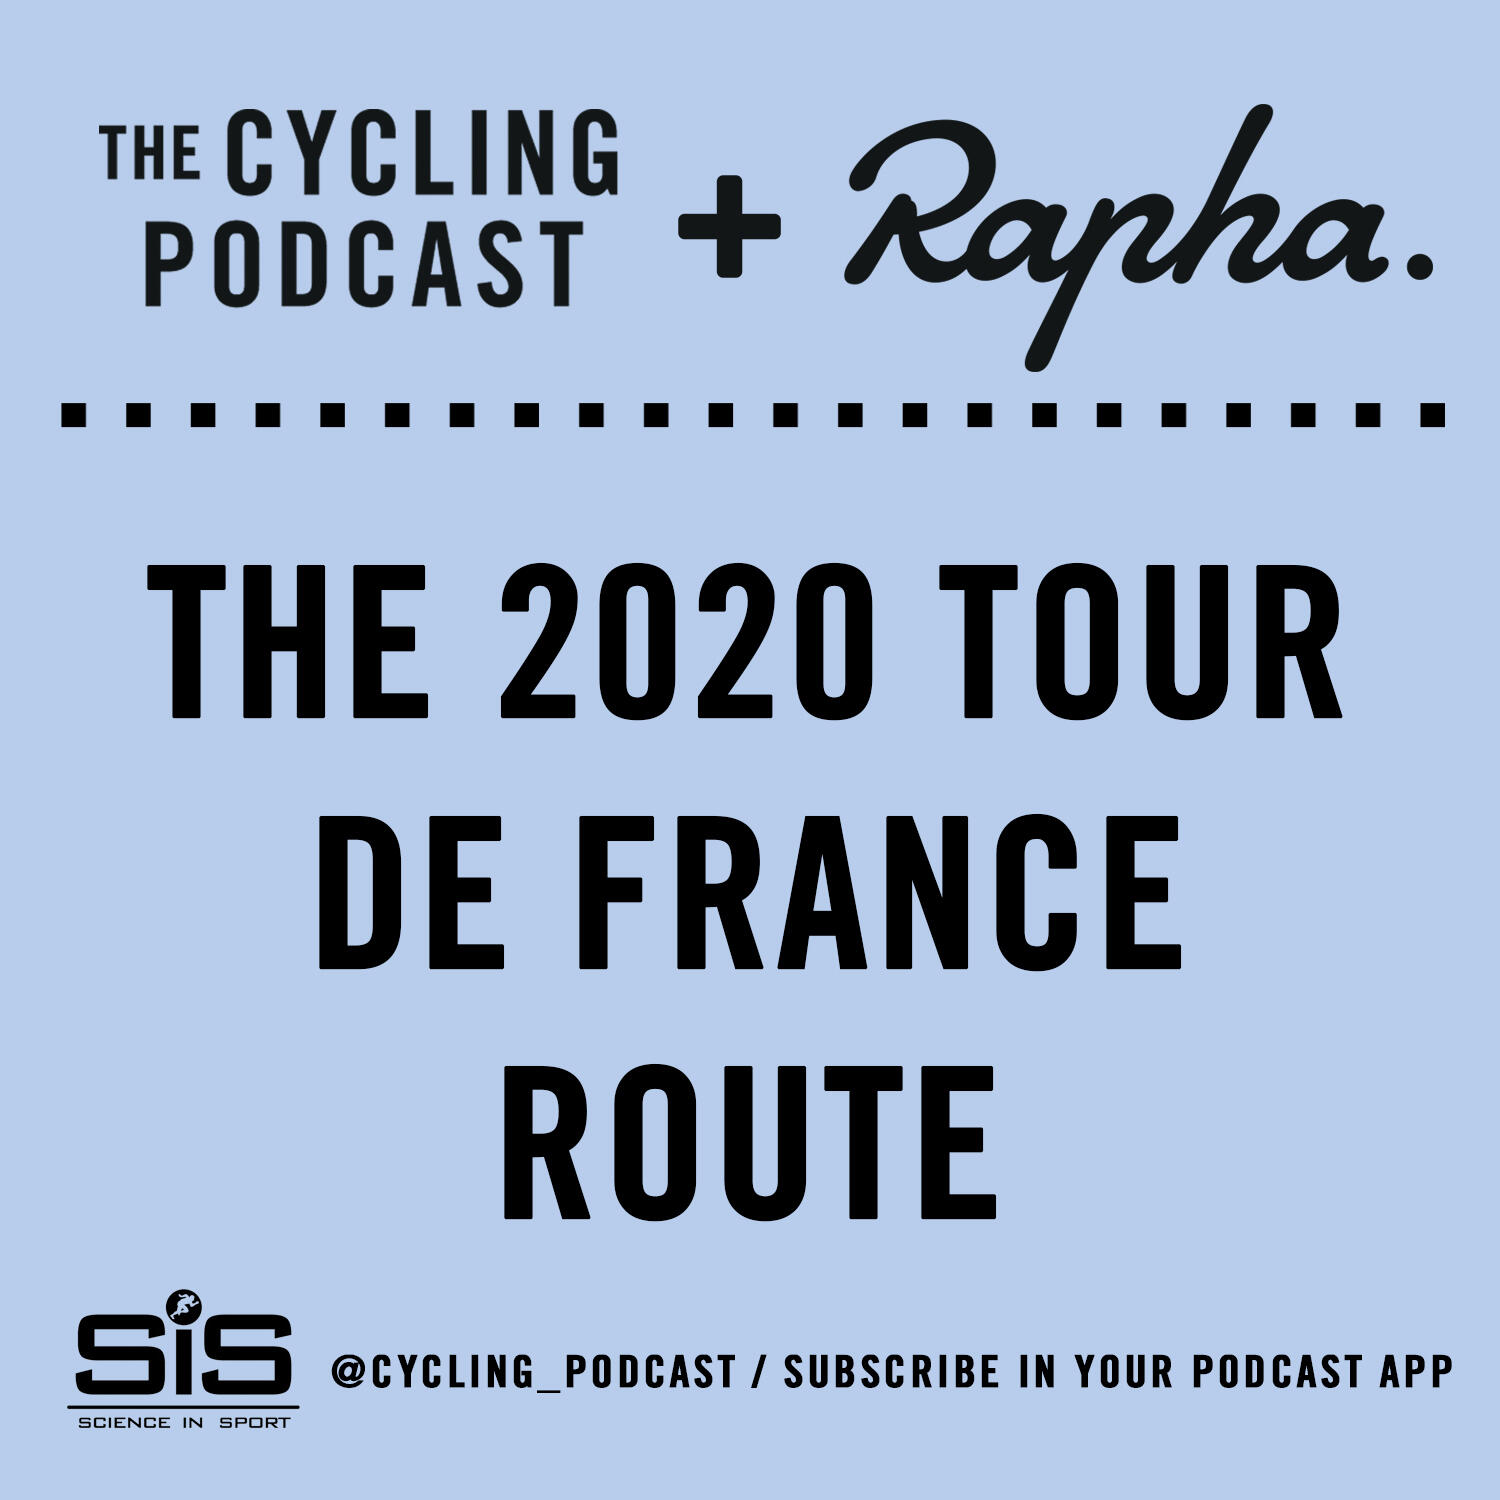 169: The 2020 Tour de France route